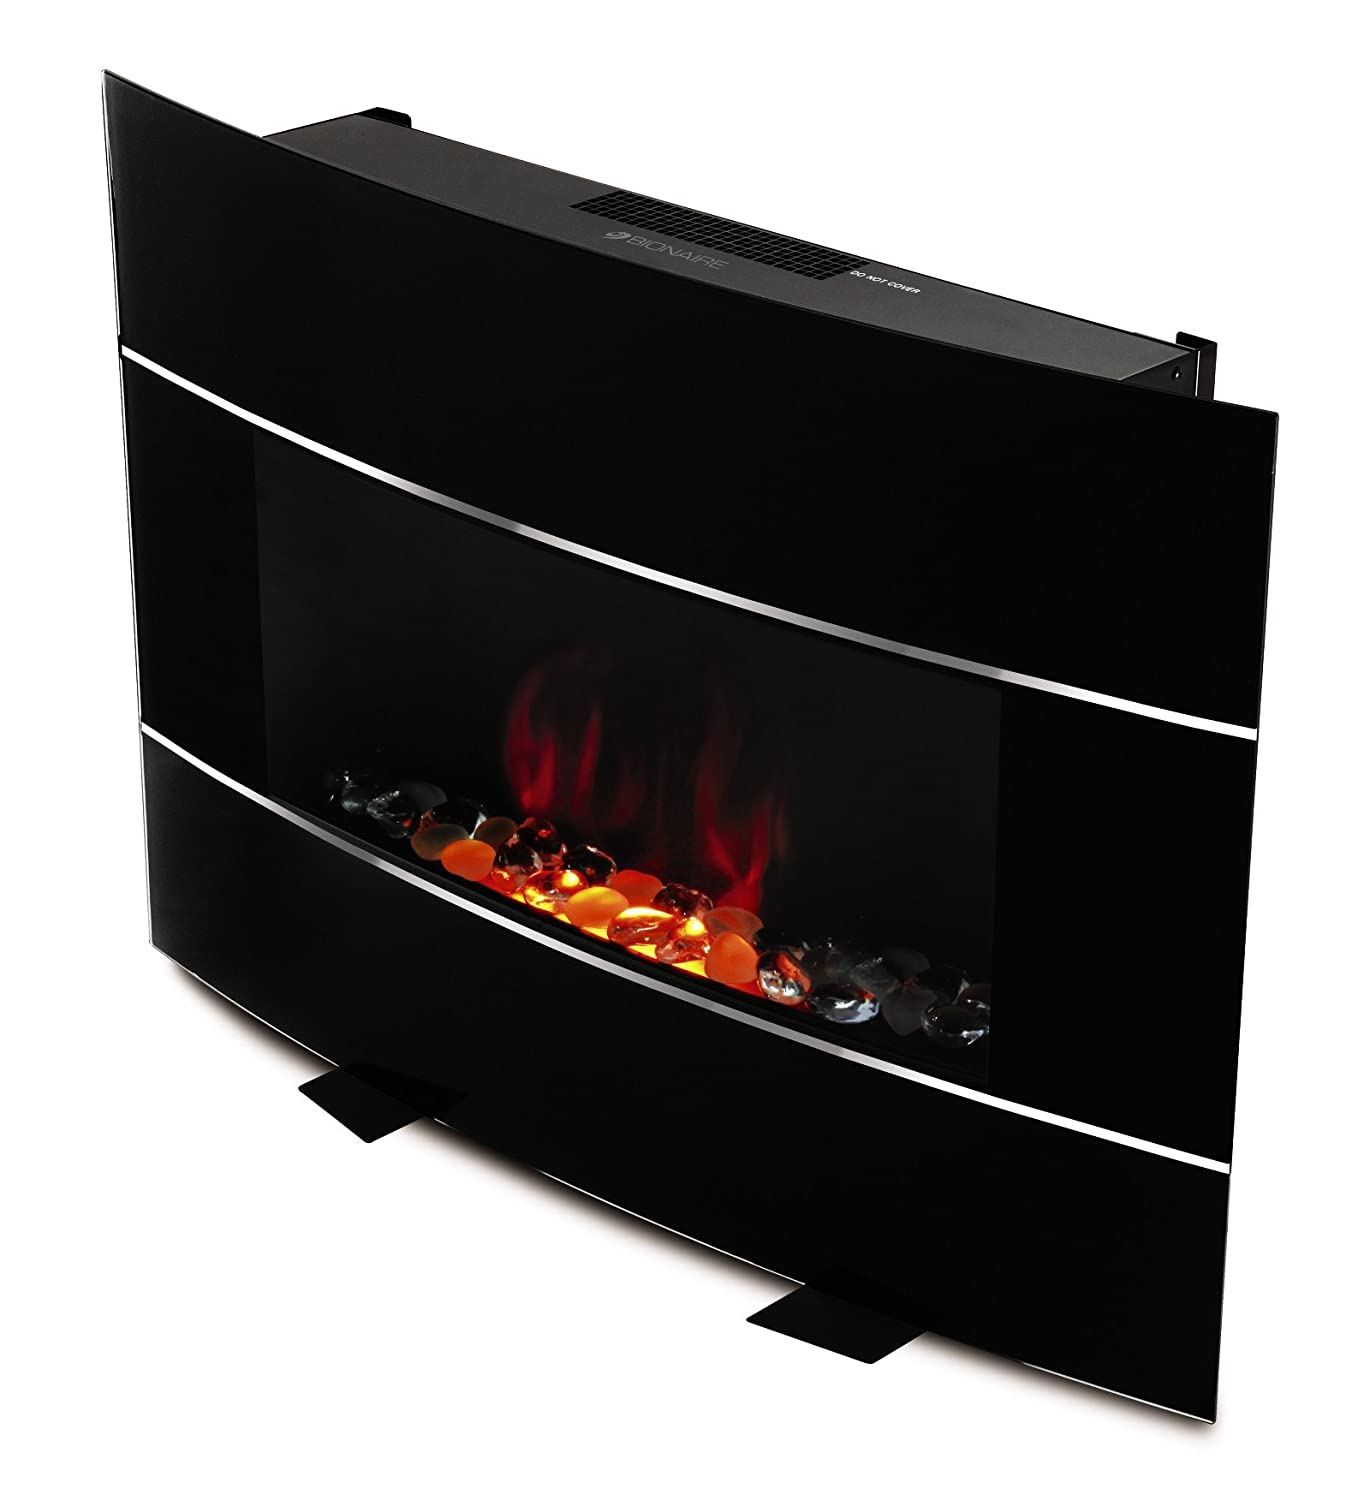 amazon com bionaire electric fireplace heater with adjustable flame